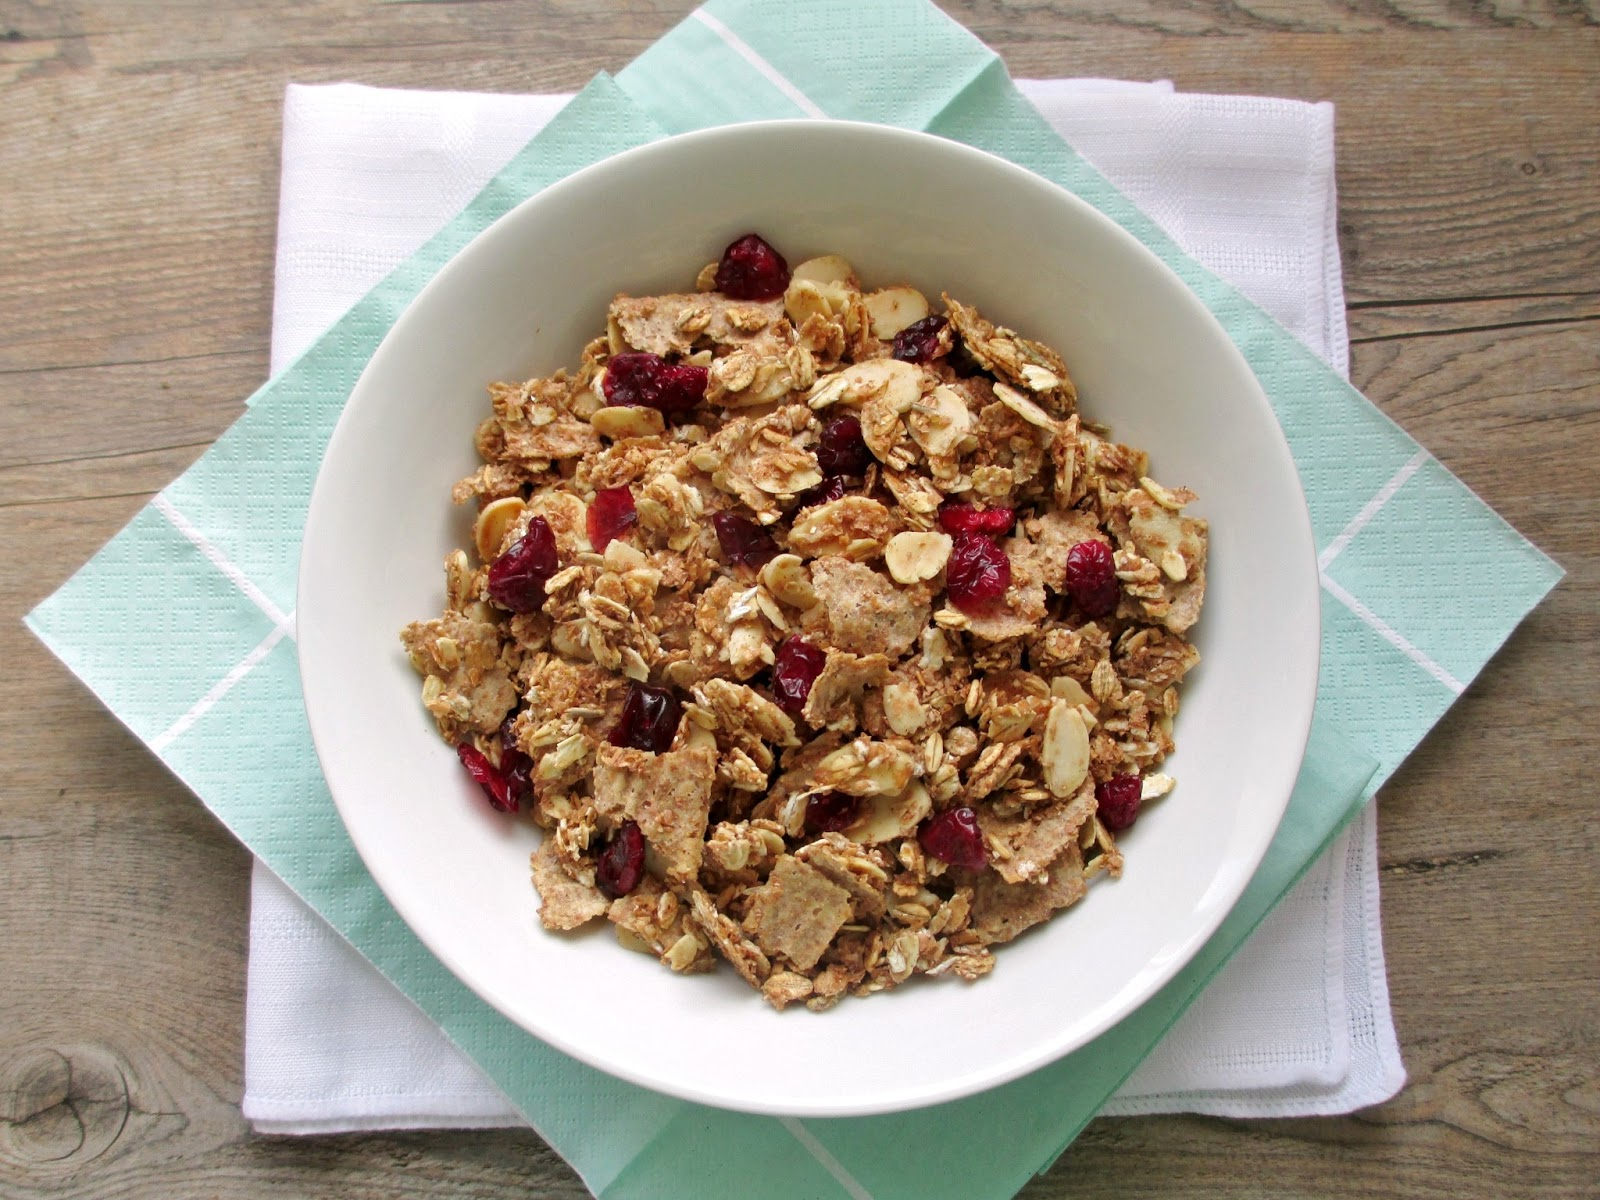 Vanilla spice bran flake cereal with almonds and cranberries the inspiration to make my own cereal came from a recipe i saw on pom wonderfuls site it sounded pretty easy once you have the right ingredients ccuart Choice Image